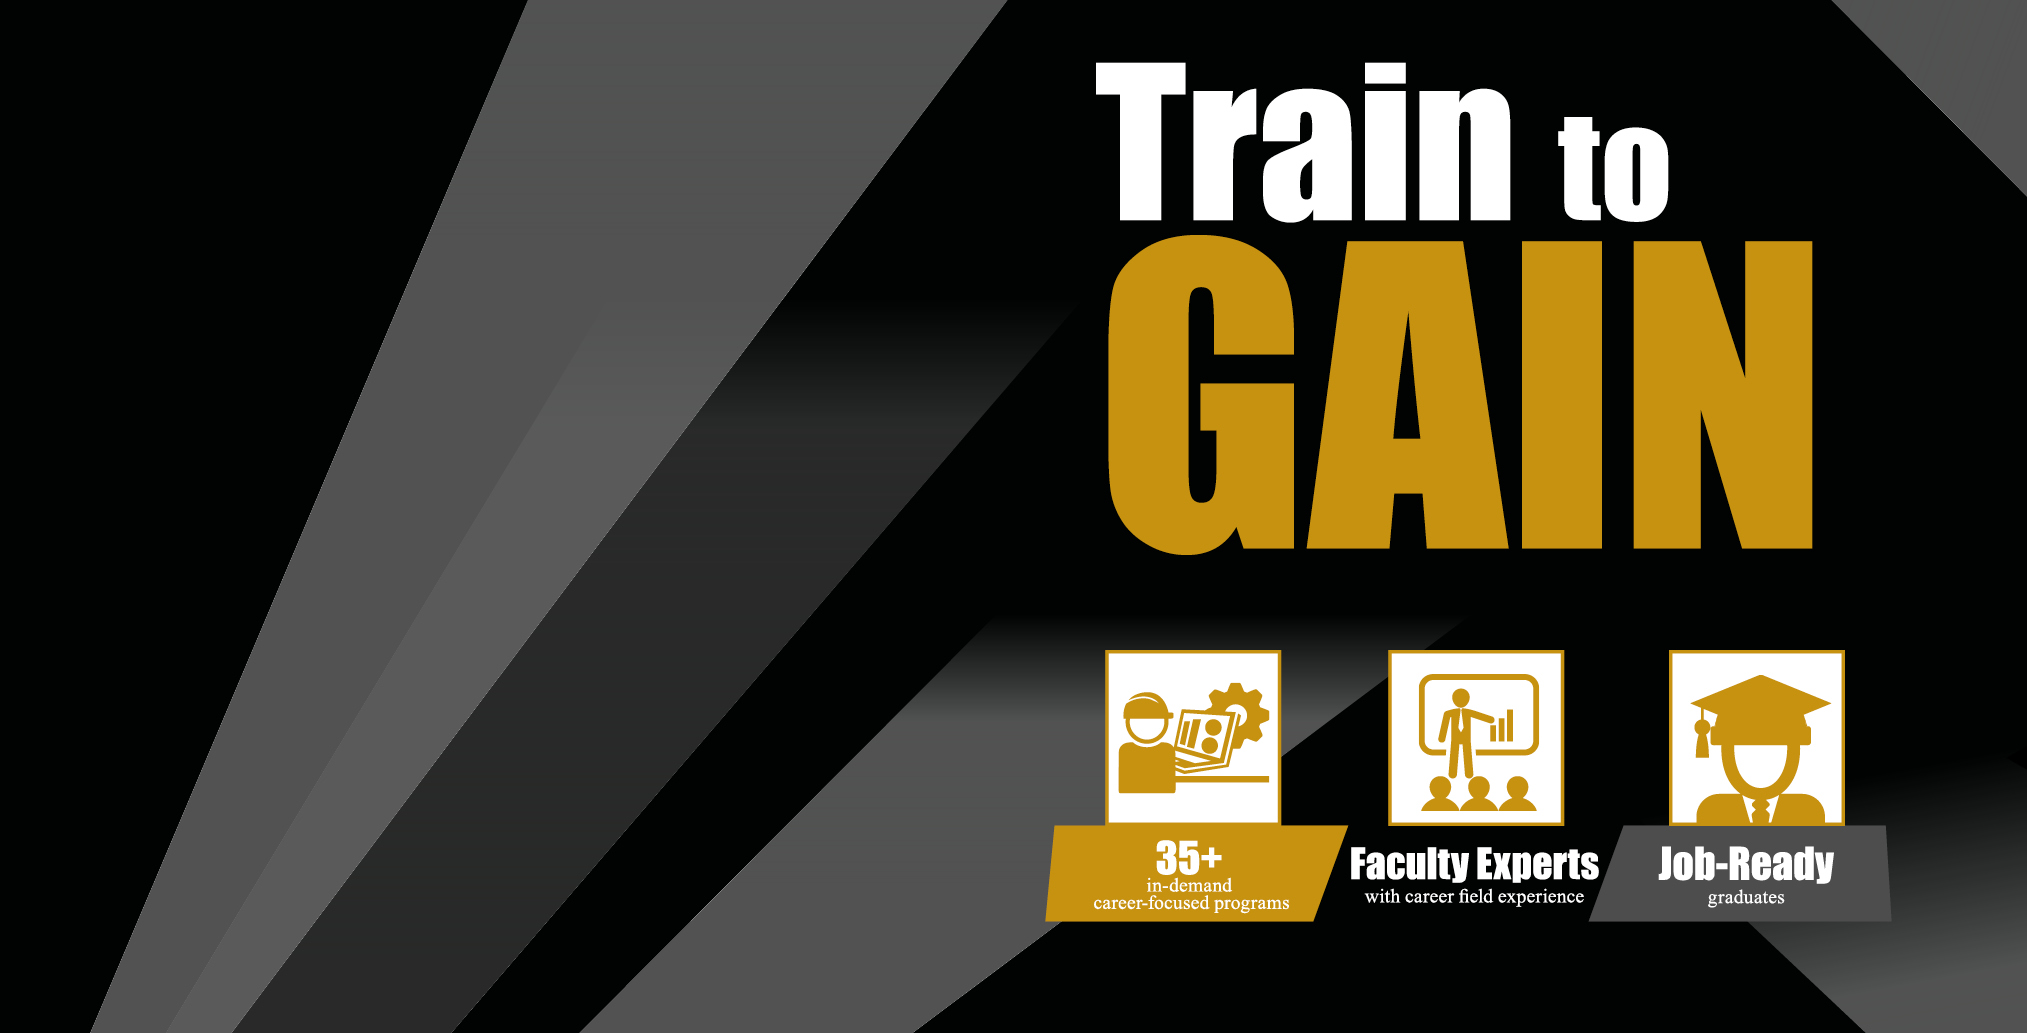 Train to Gain More Opportunities